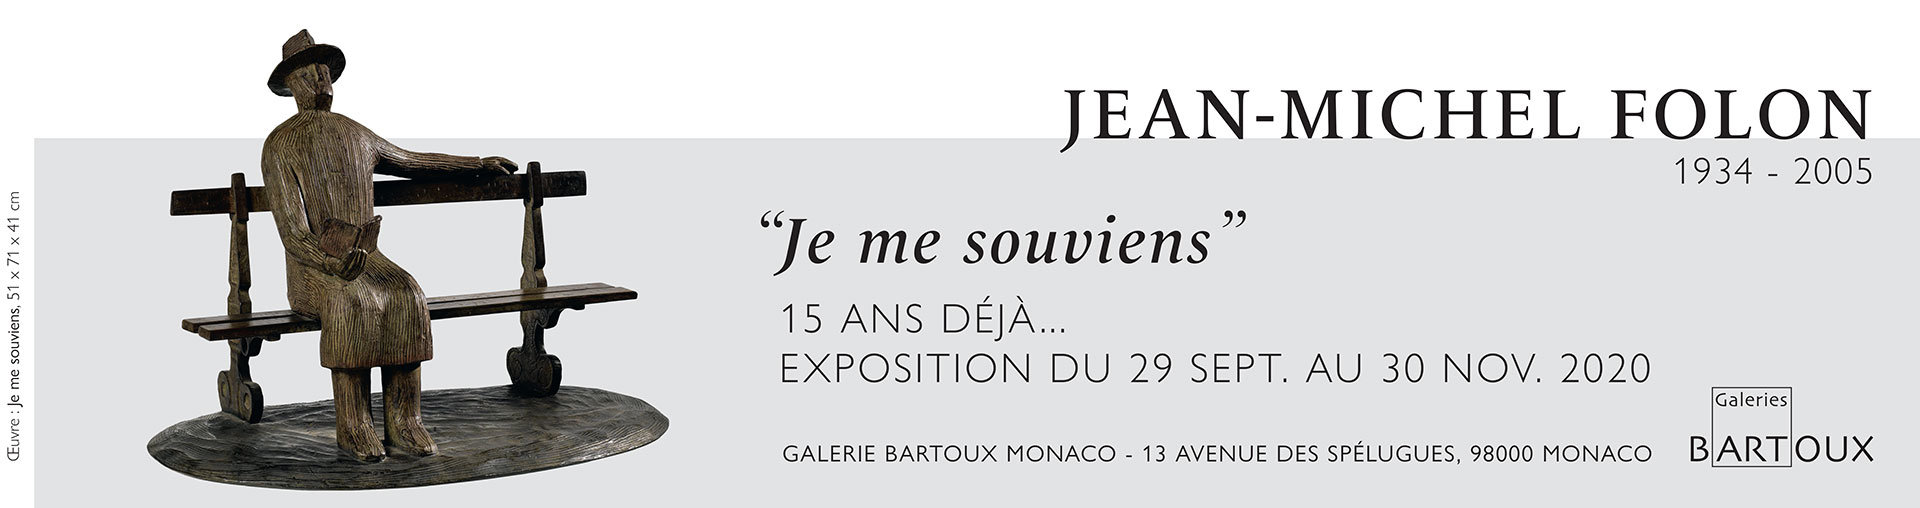 Exposition Jean-Michel Folon